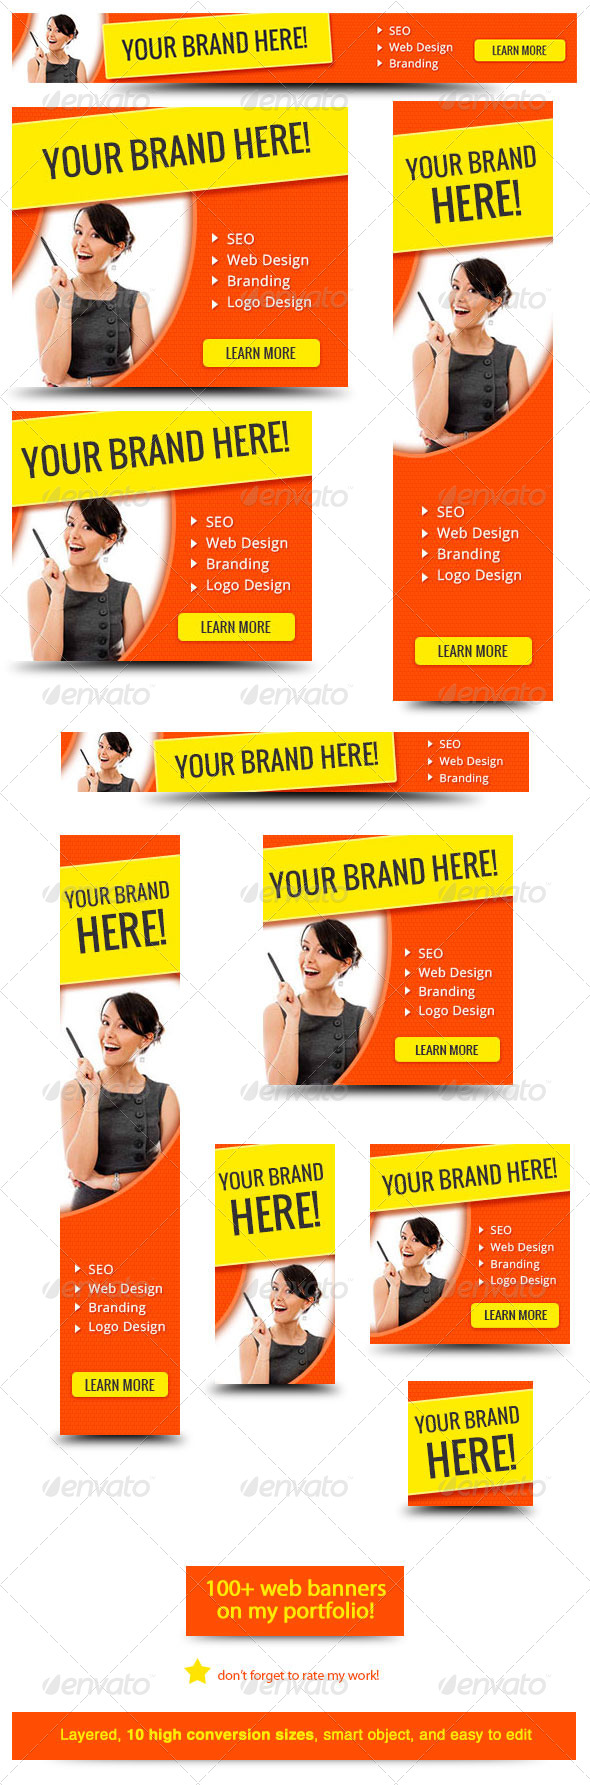 GraphicRiver Your Brand Here Web Banner 6108544